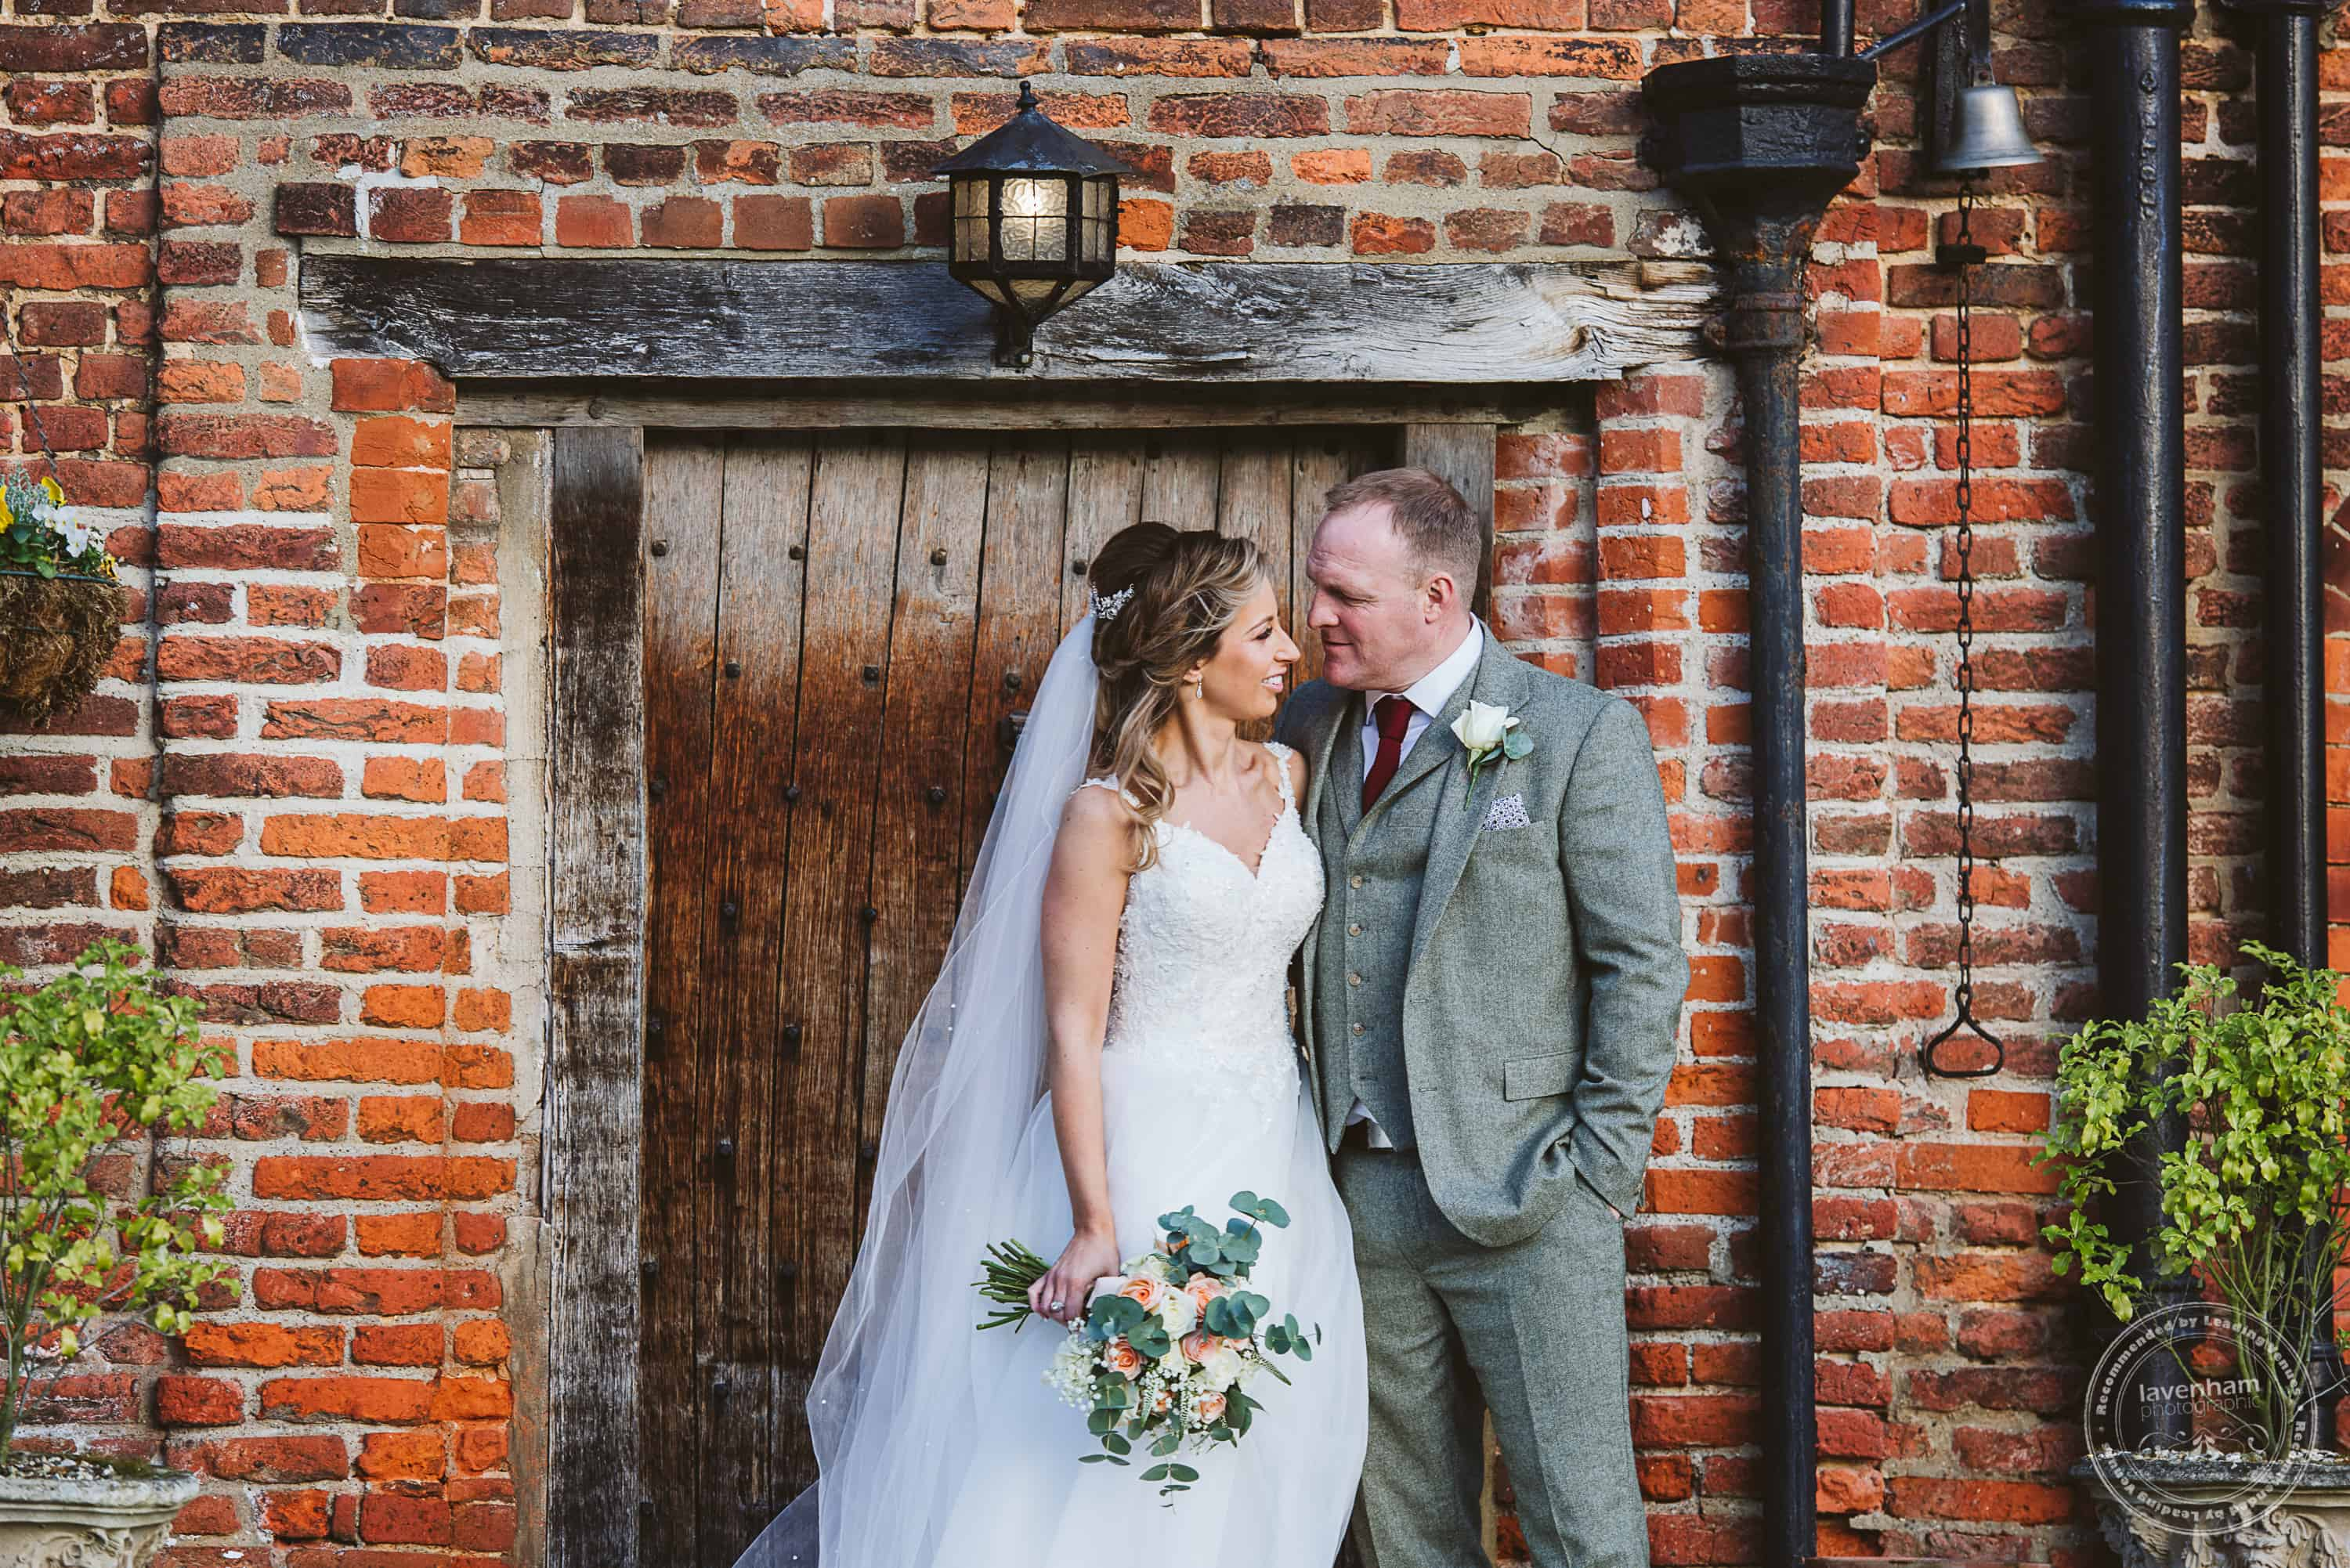 010220 Leez Priory Wedding Photographer 118